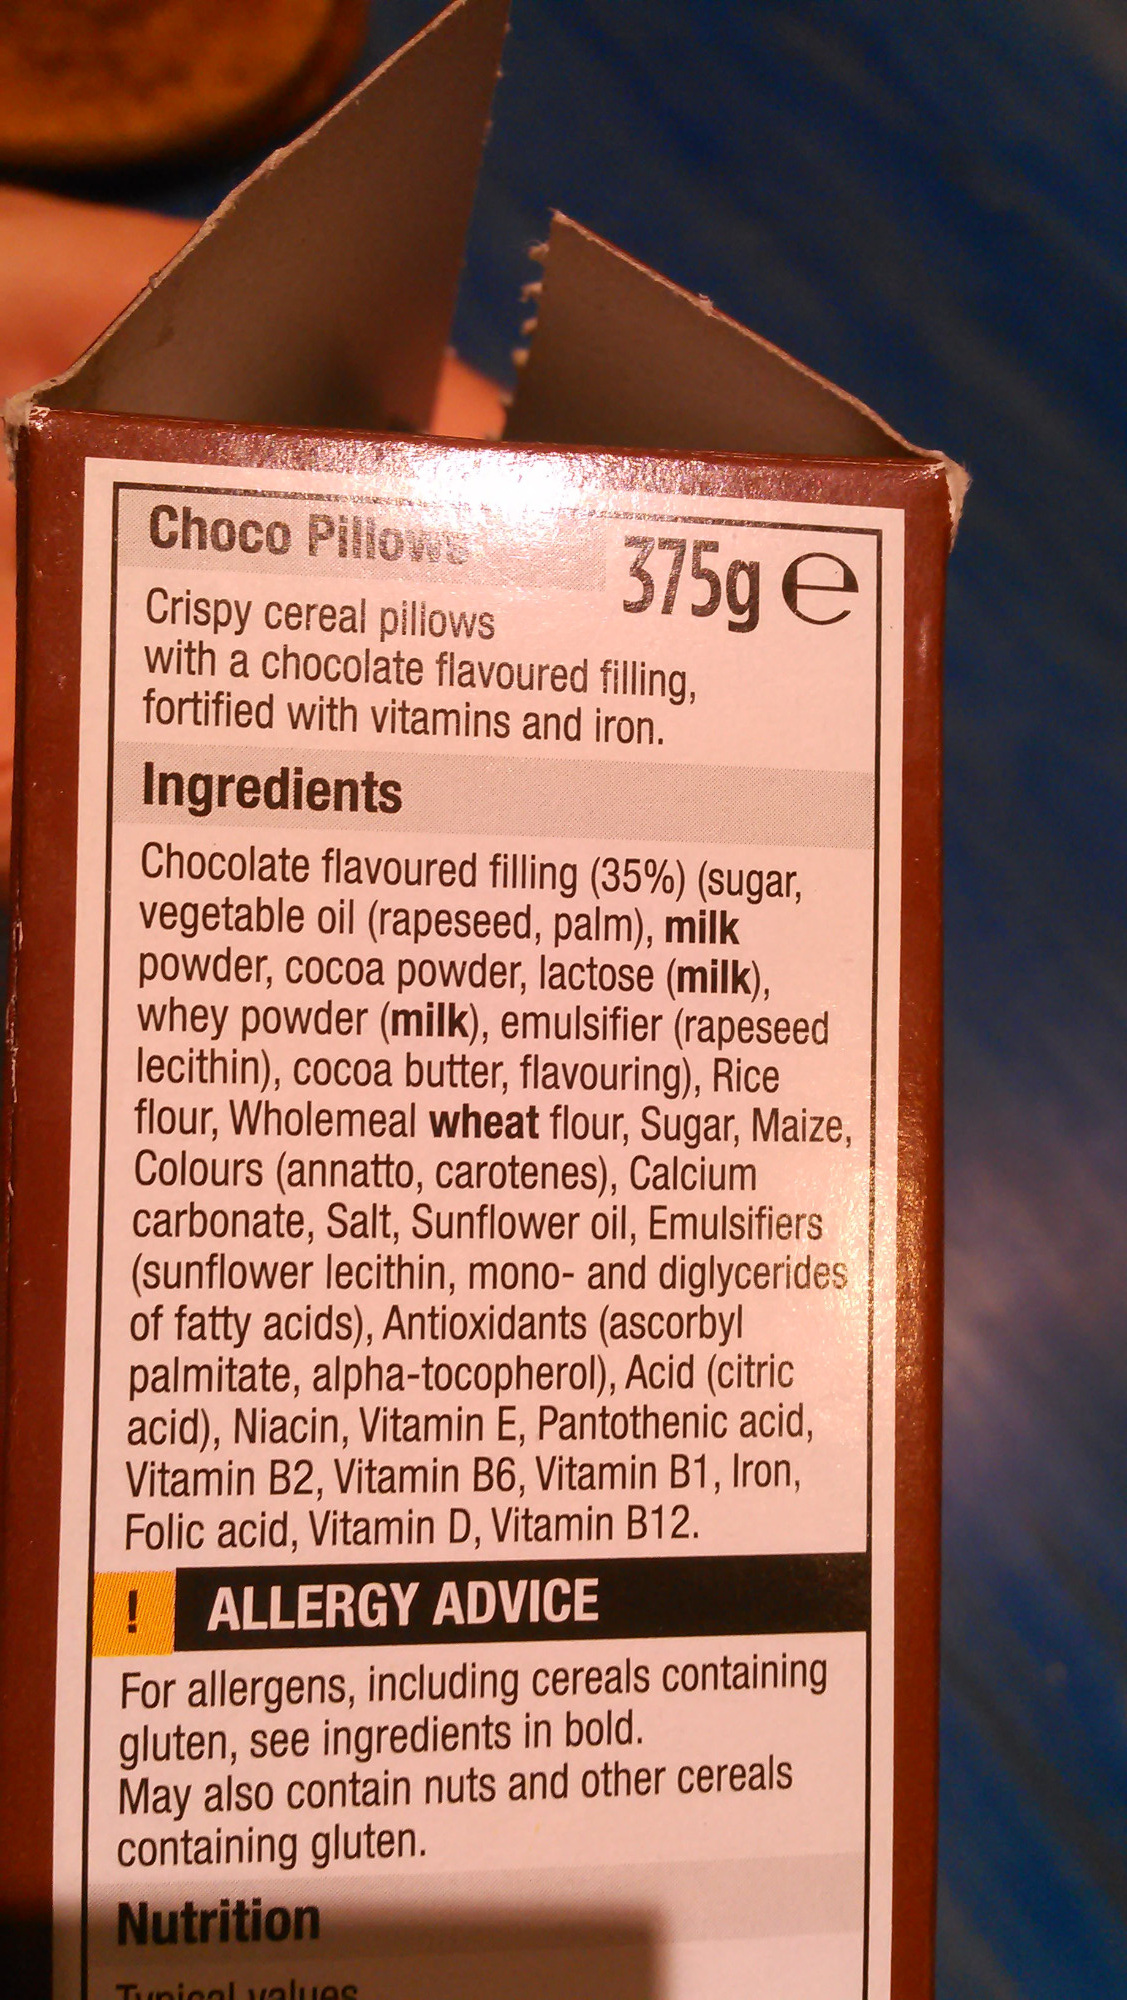 Choco pillows - Ingredients